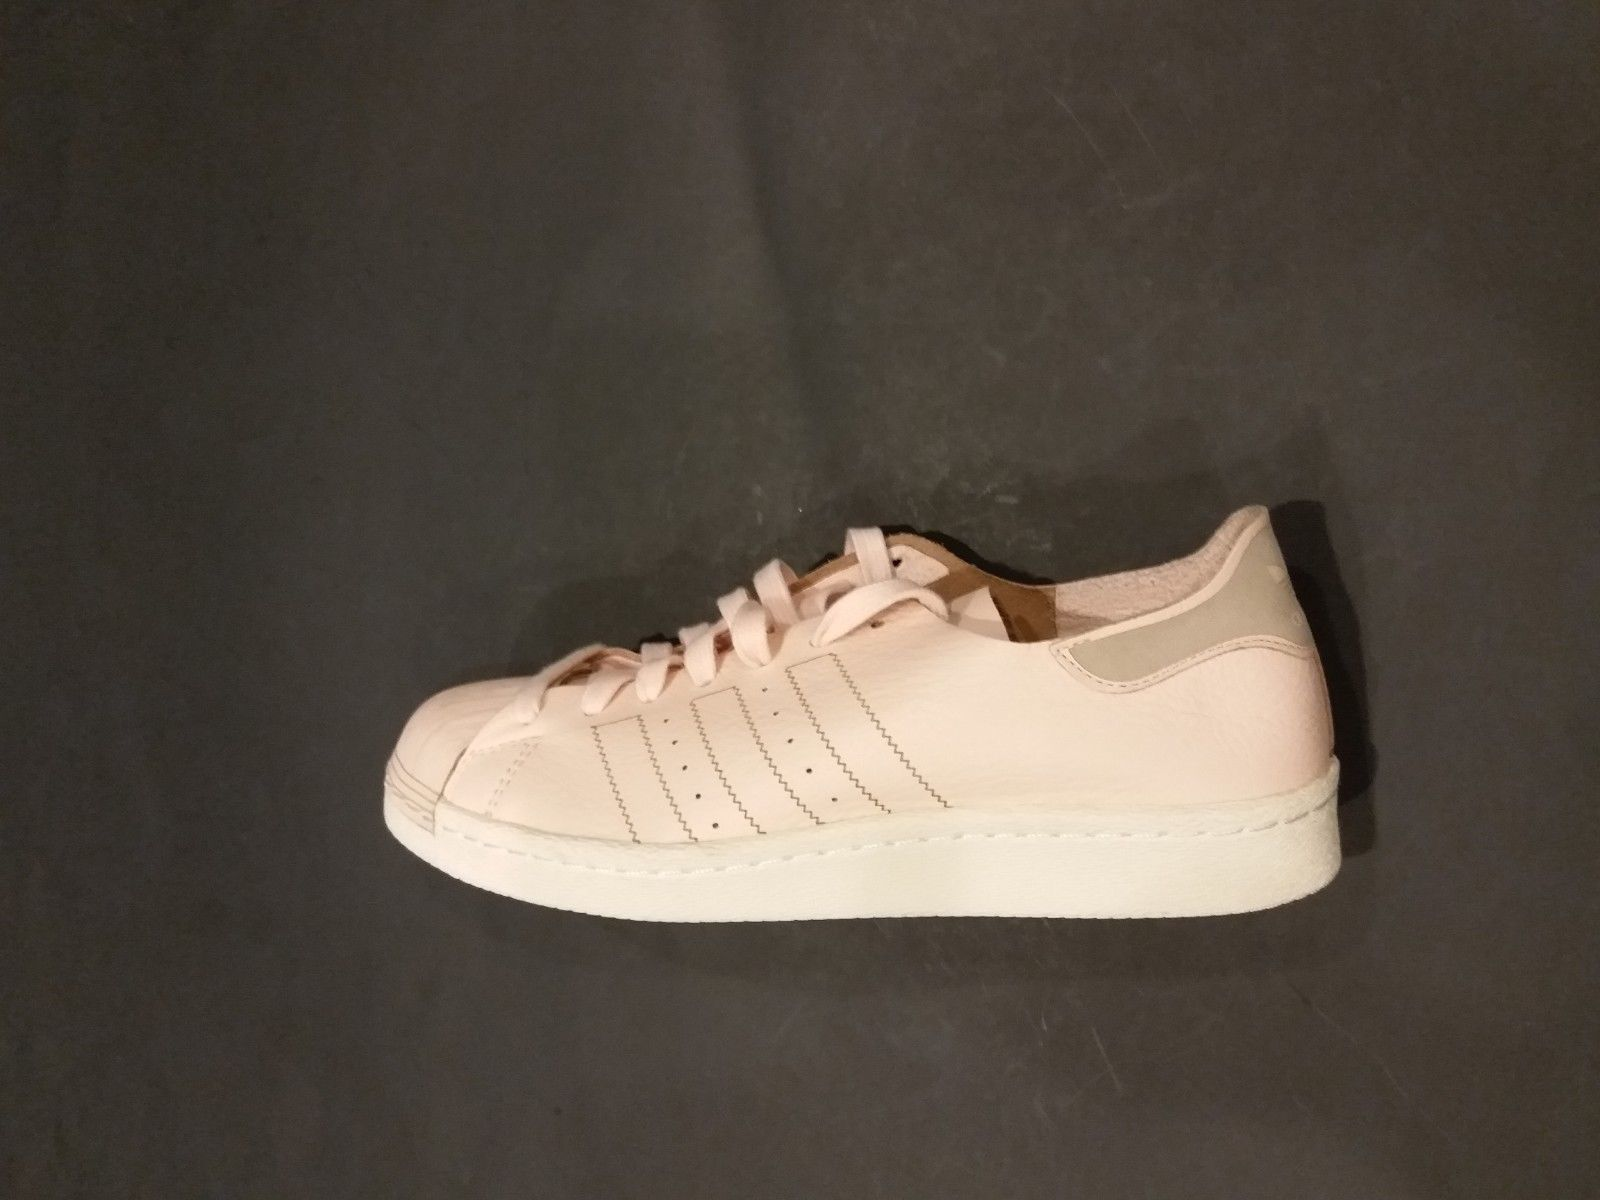 Primary image for WOMEN'S SHOES SNEAKERS ADIDAS SUPERSTAR 80S [BZ0500] SZ-9